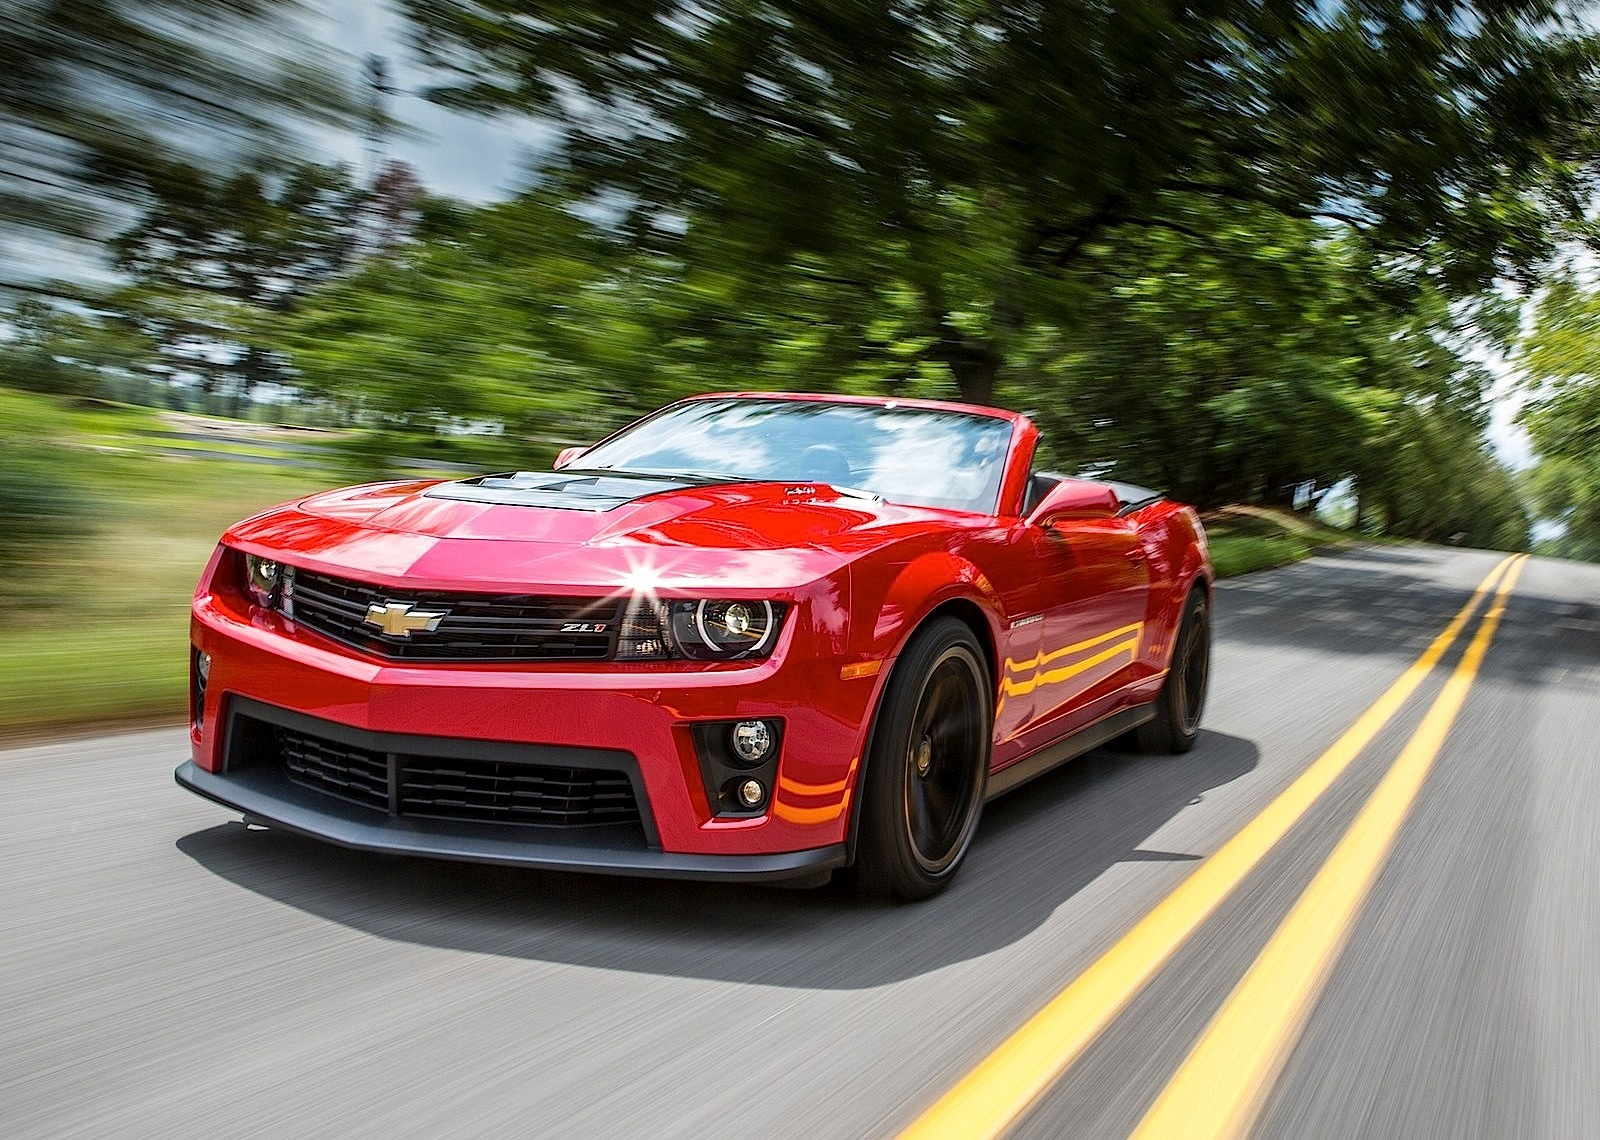 2019 Chevrolet Camaro ZL1 Convertible photo - 4